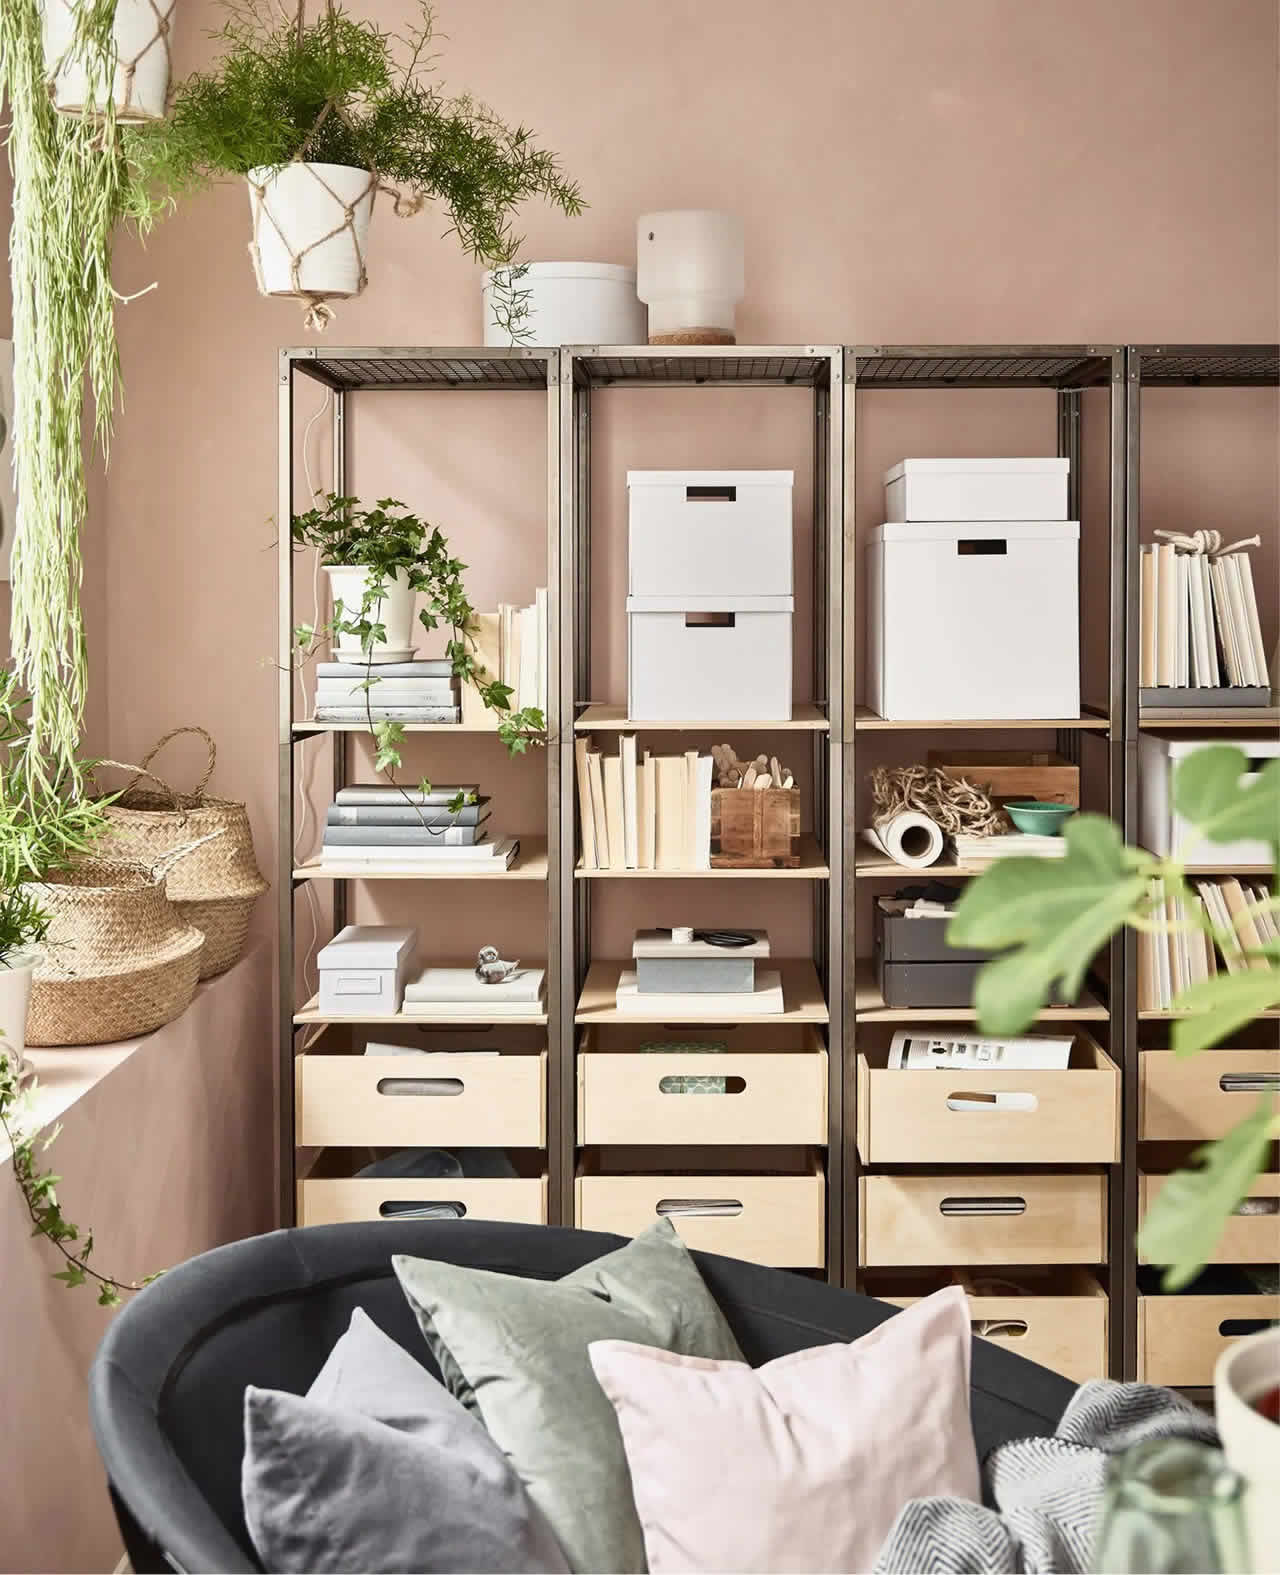 IKEA Ideas - How to get a stress-free living room